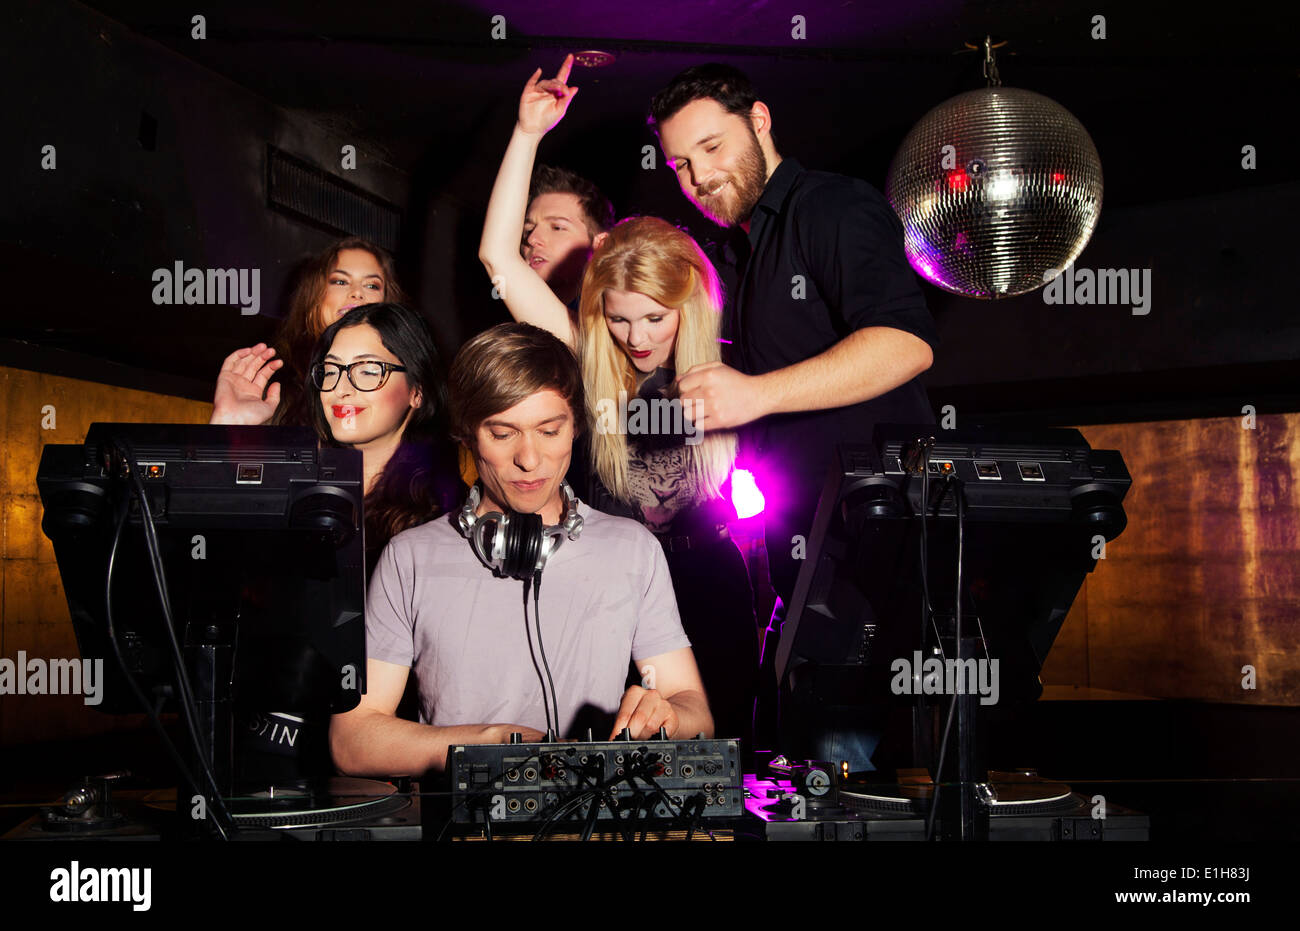 Group of friends watching DJ in nightclub Stock Photo